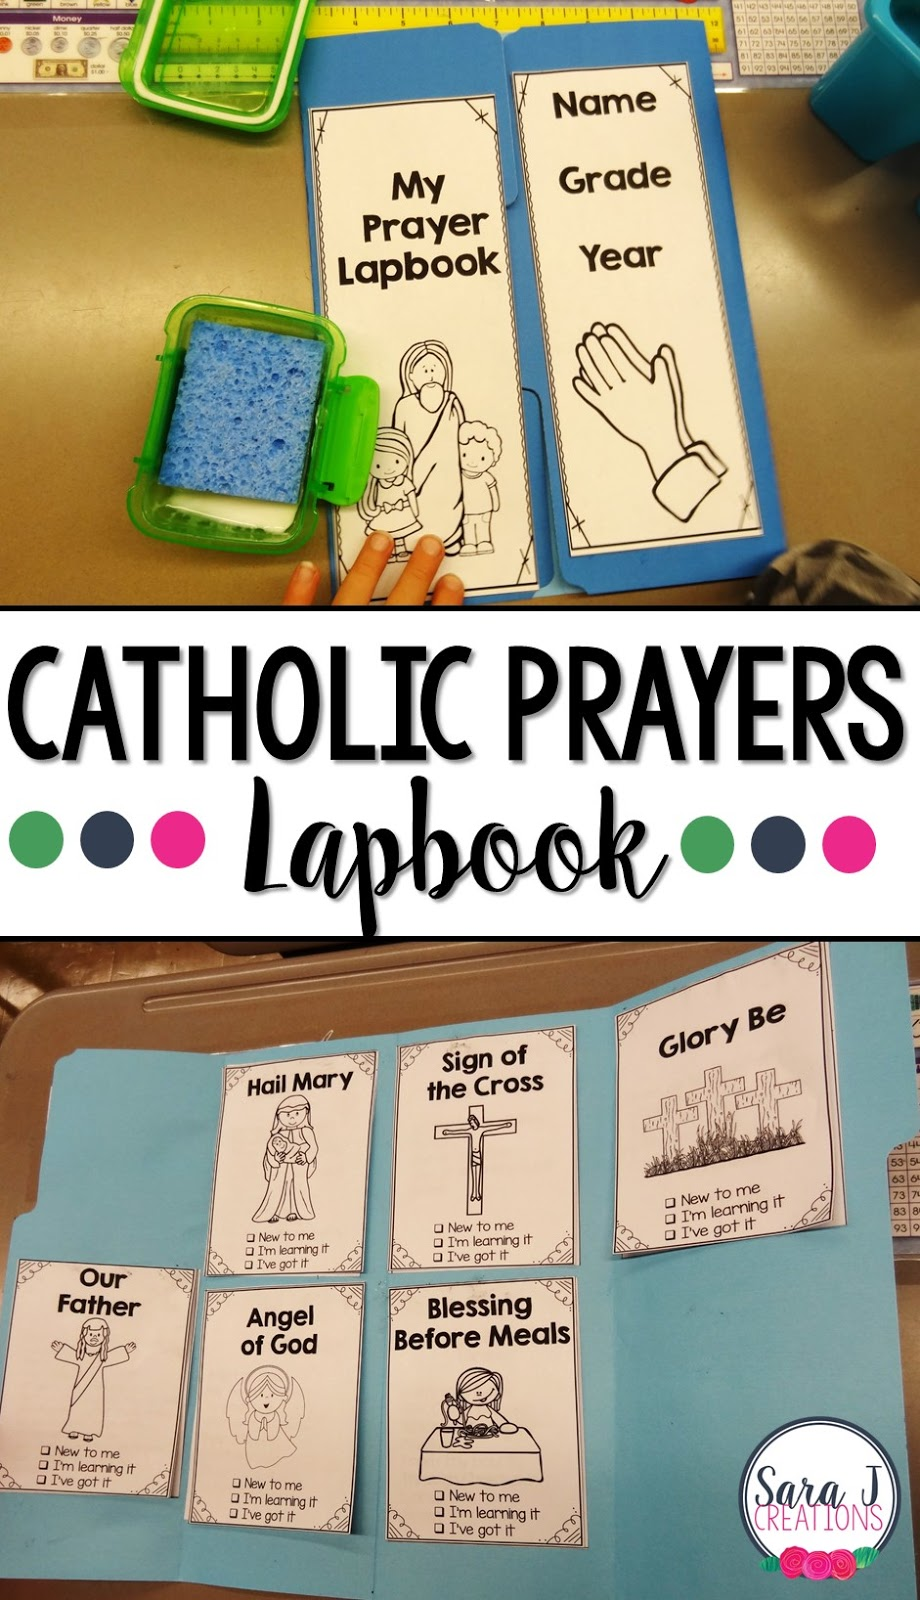 Catholic Prayers Lapbook is great for helping kids to pray and and memorize prayers.